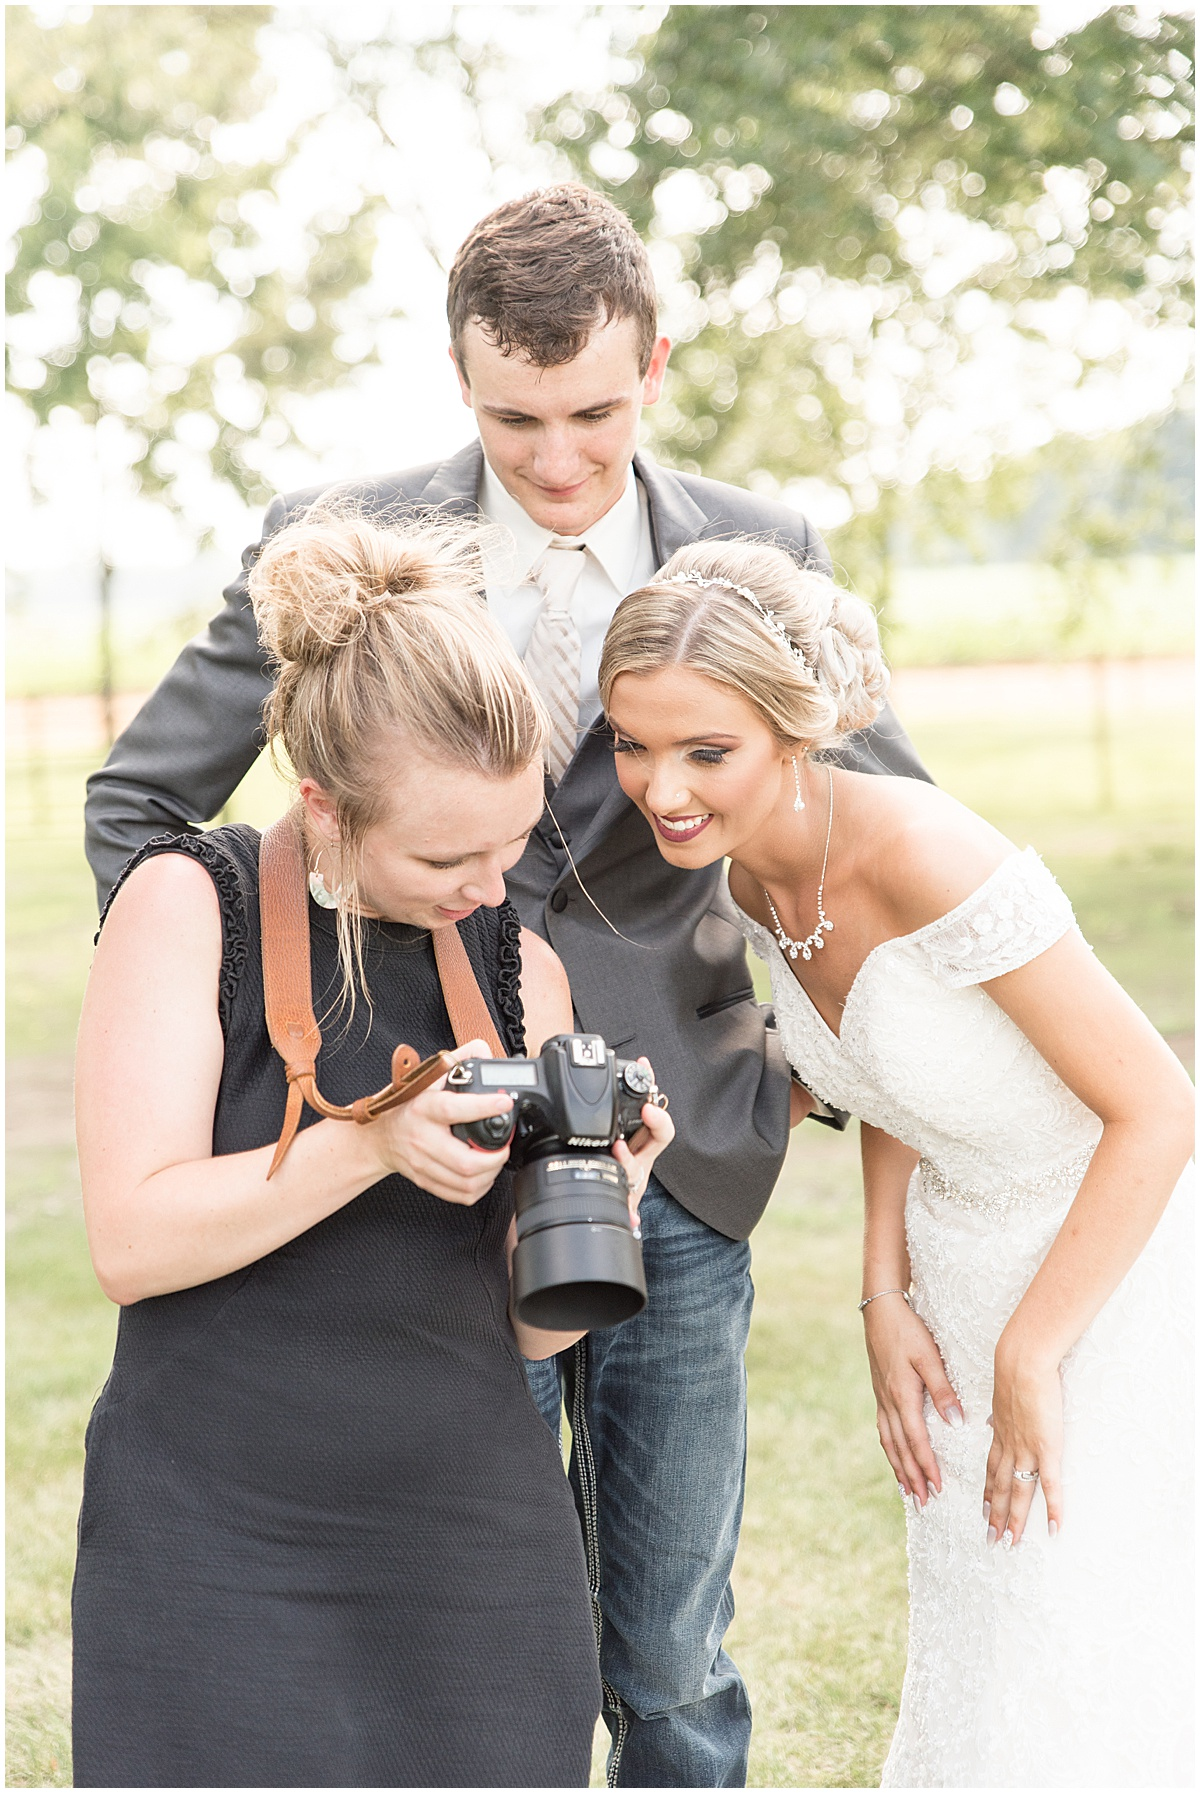 Victoria Rayburn Photography showing bride and groom photos